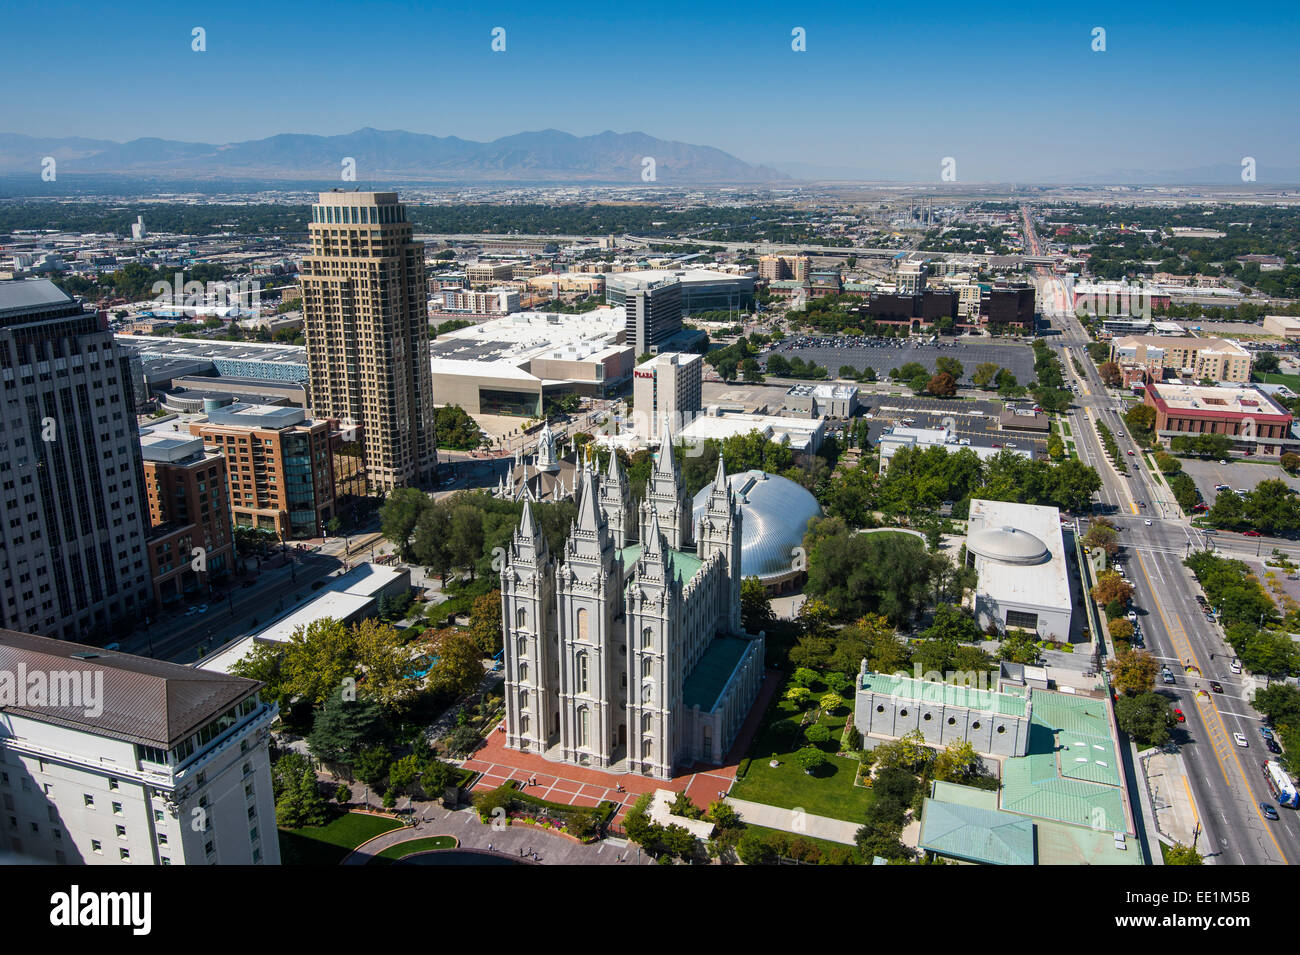 Overlook over Salt Lake City and the Mormon Assembly Hall, Salt Lake City, Utah, United States of America, North - Stock Image